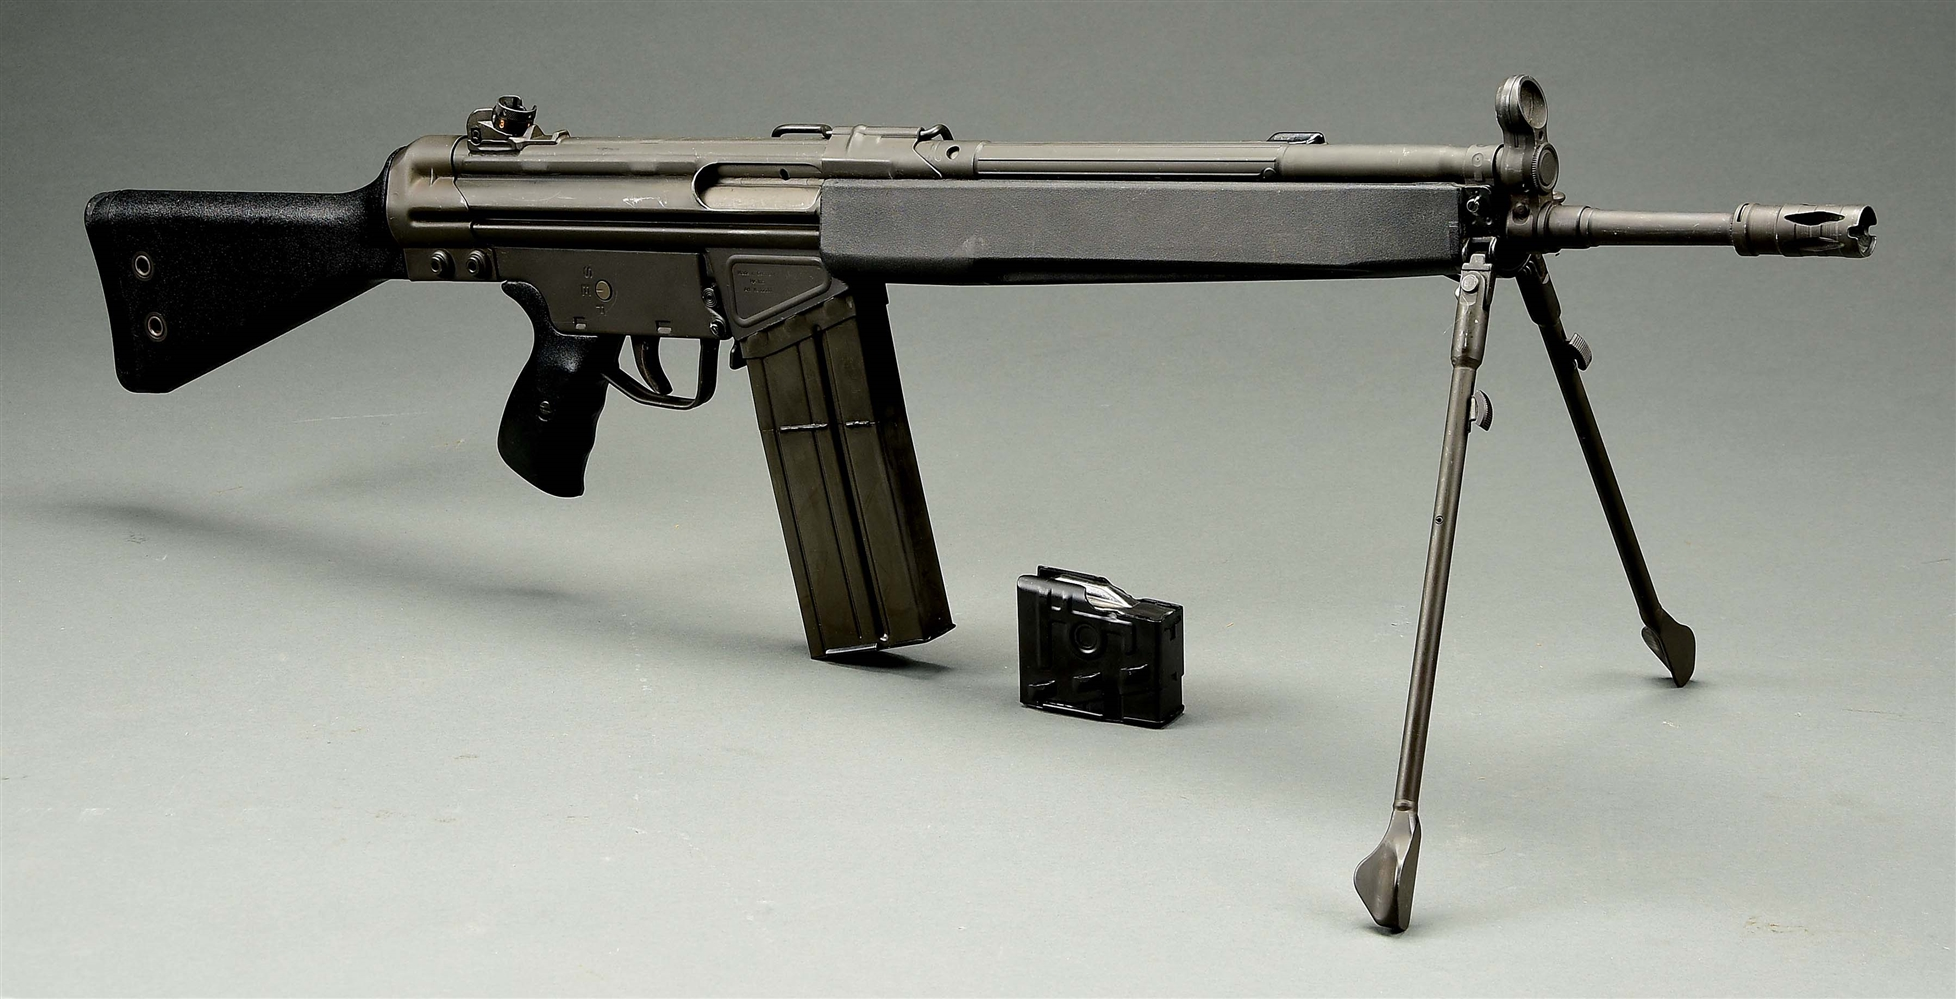 (N) HECKLER & KOCH G3 MACHINE GUN AS CONVERTED BY GROUP INDUSTRIES FROM HK-91 (FULLY TRANSFERABLE).